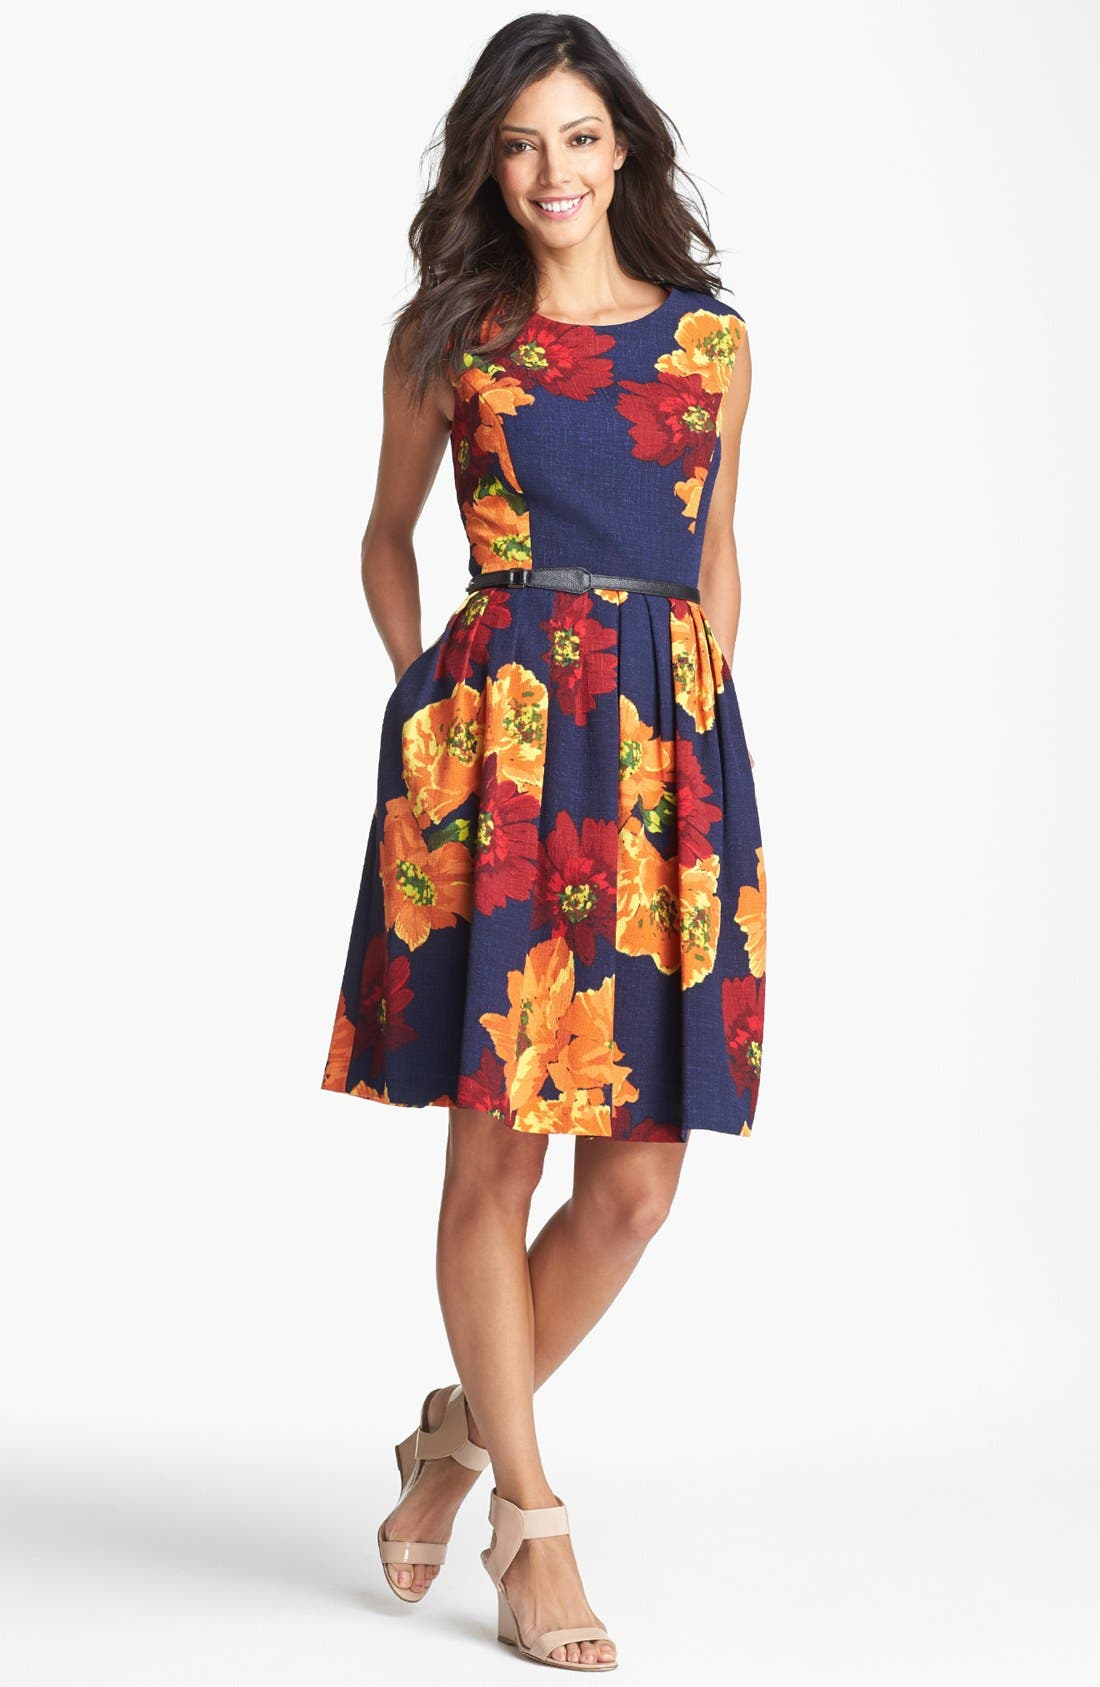 Alternate Image 1 Selected - Ellen Tracy Print Sleeveless Fit & Flare Dress